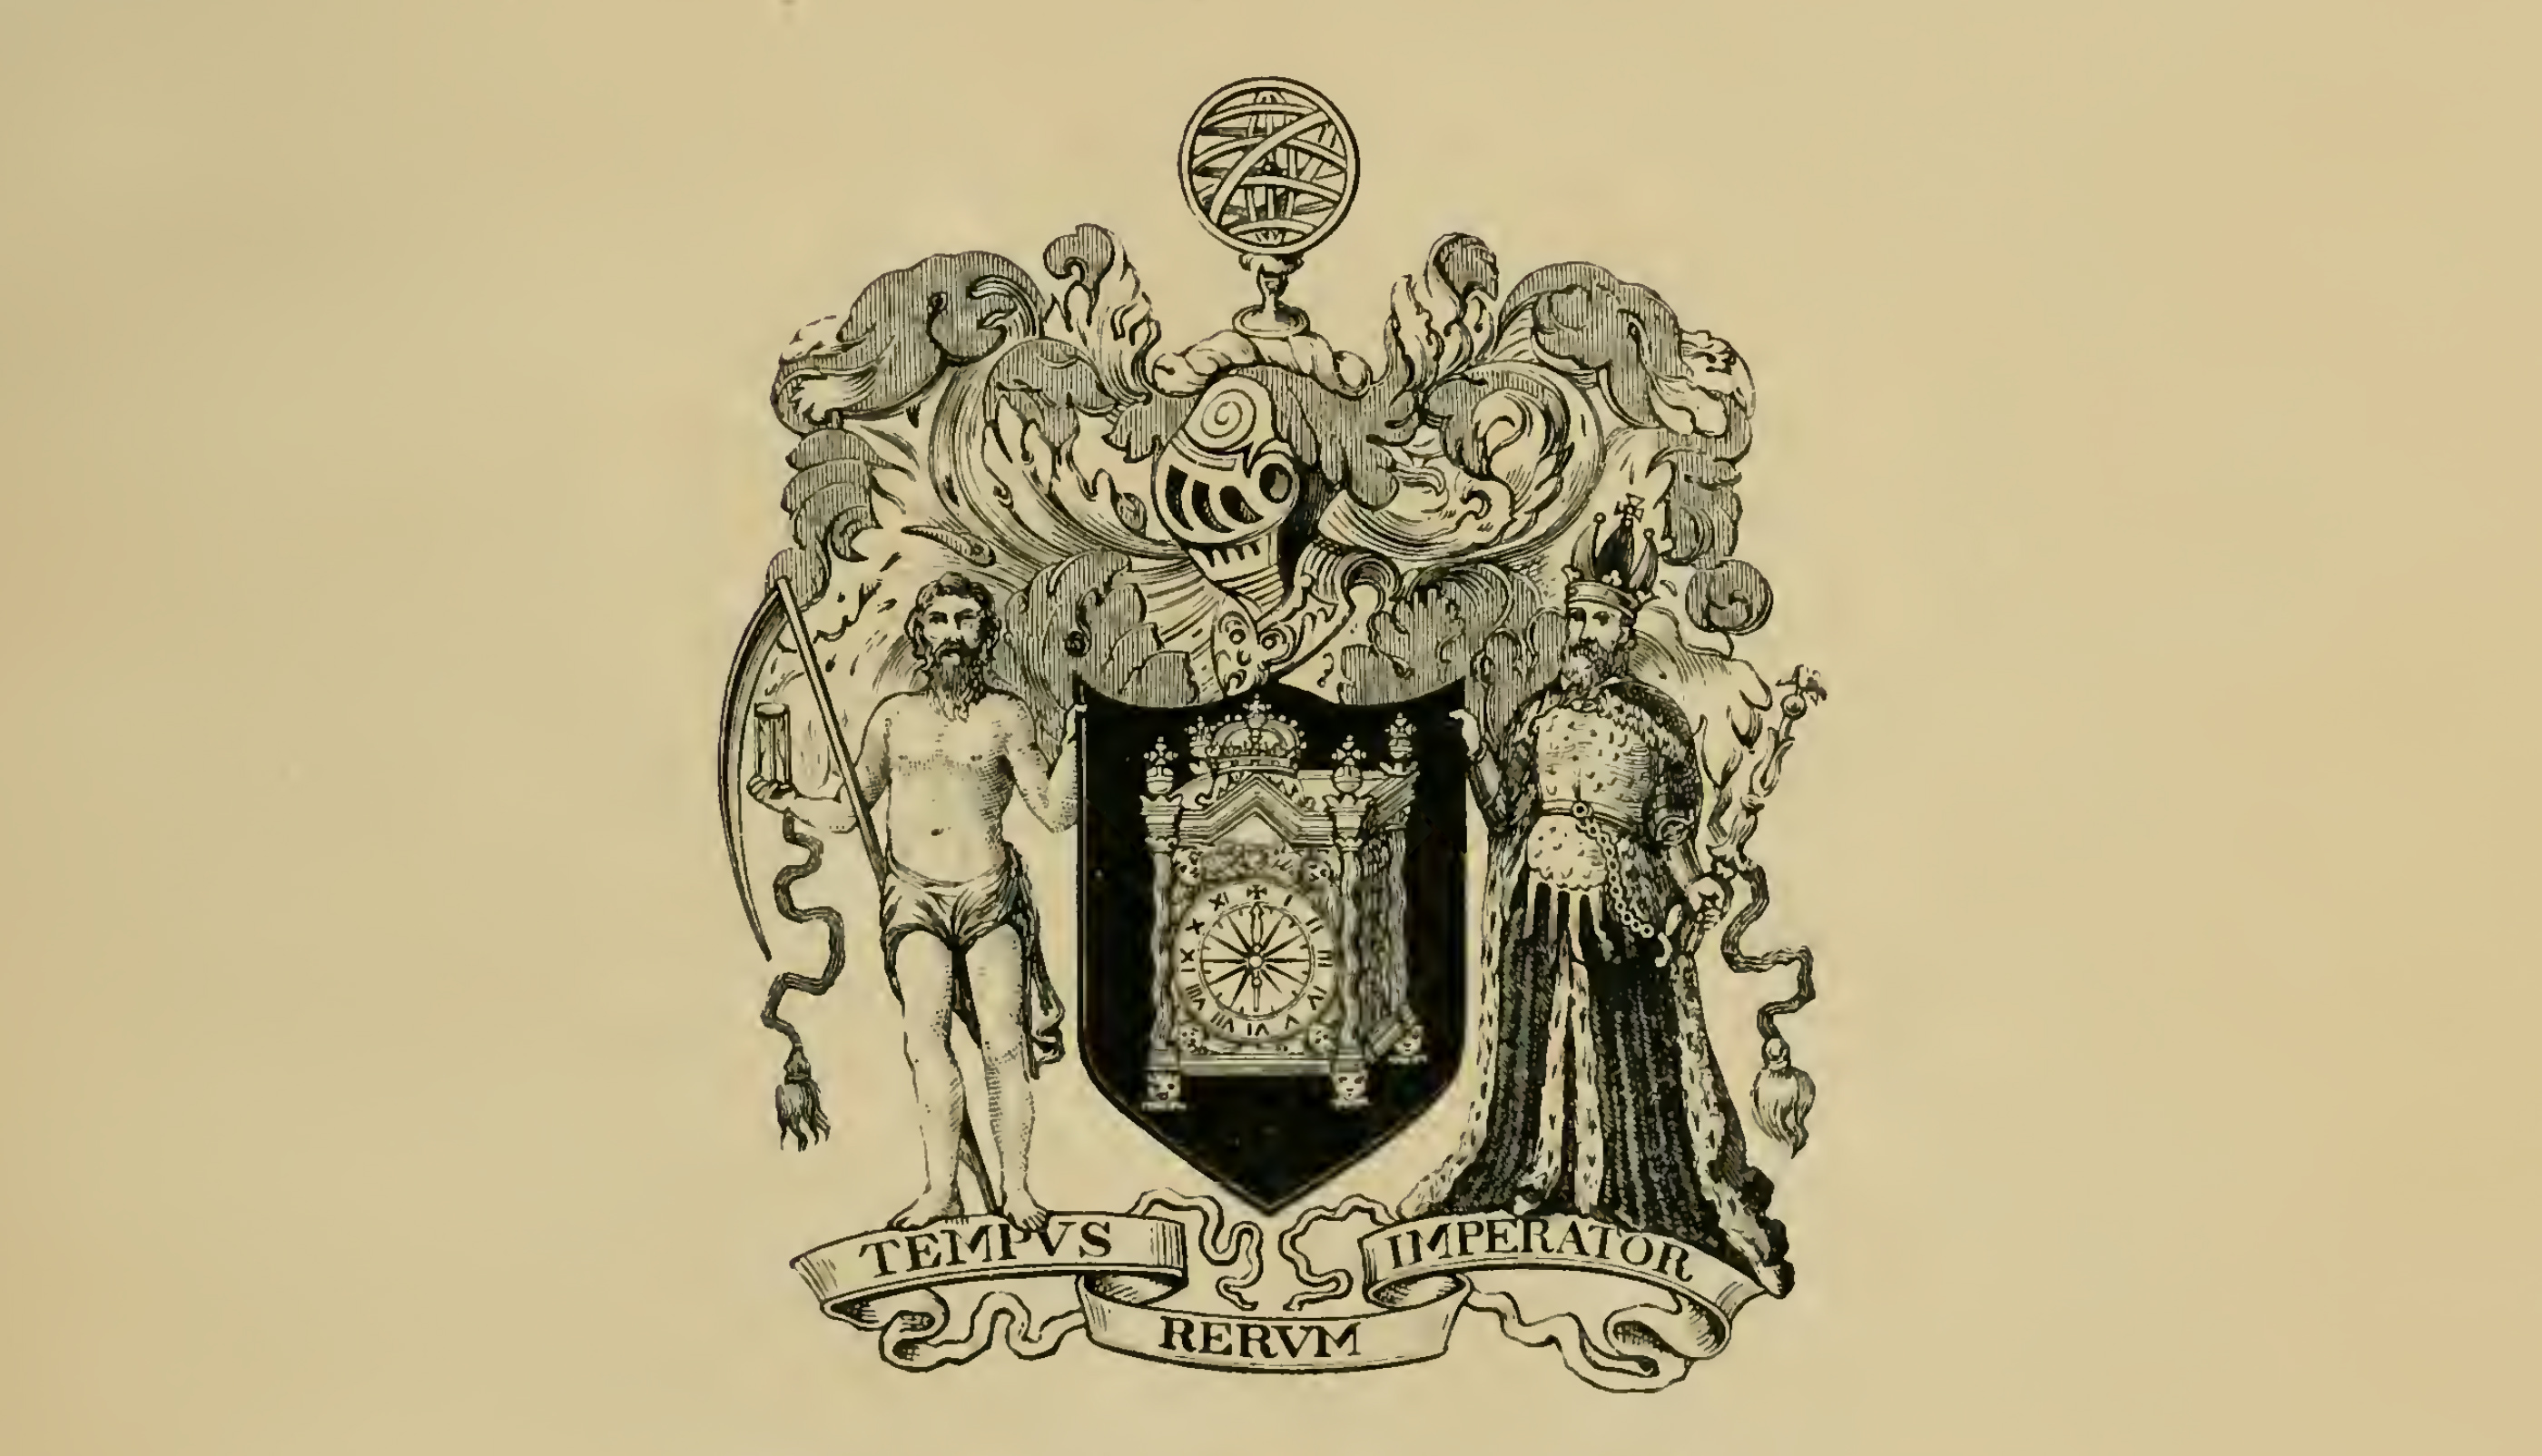 Original image from The Worshipful Company of Clockmakers